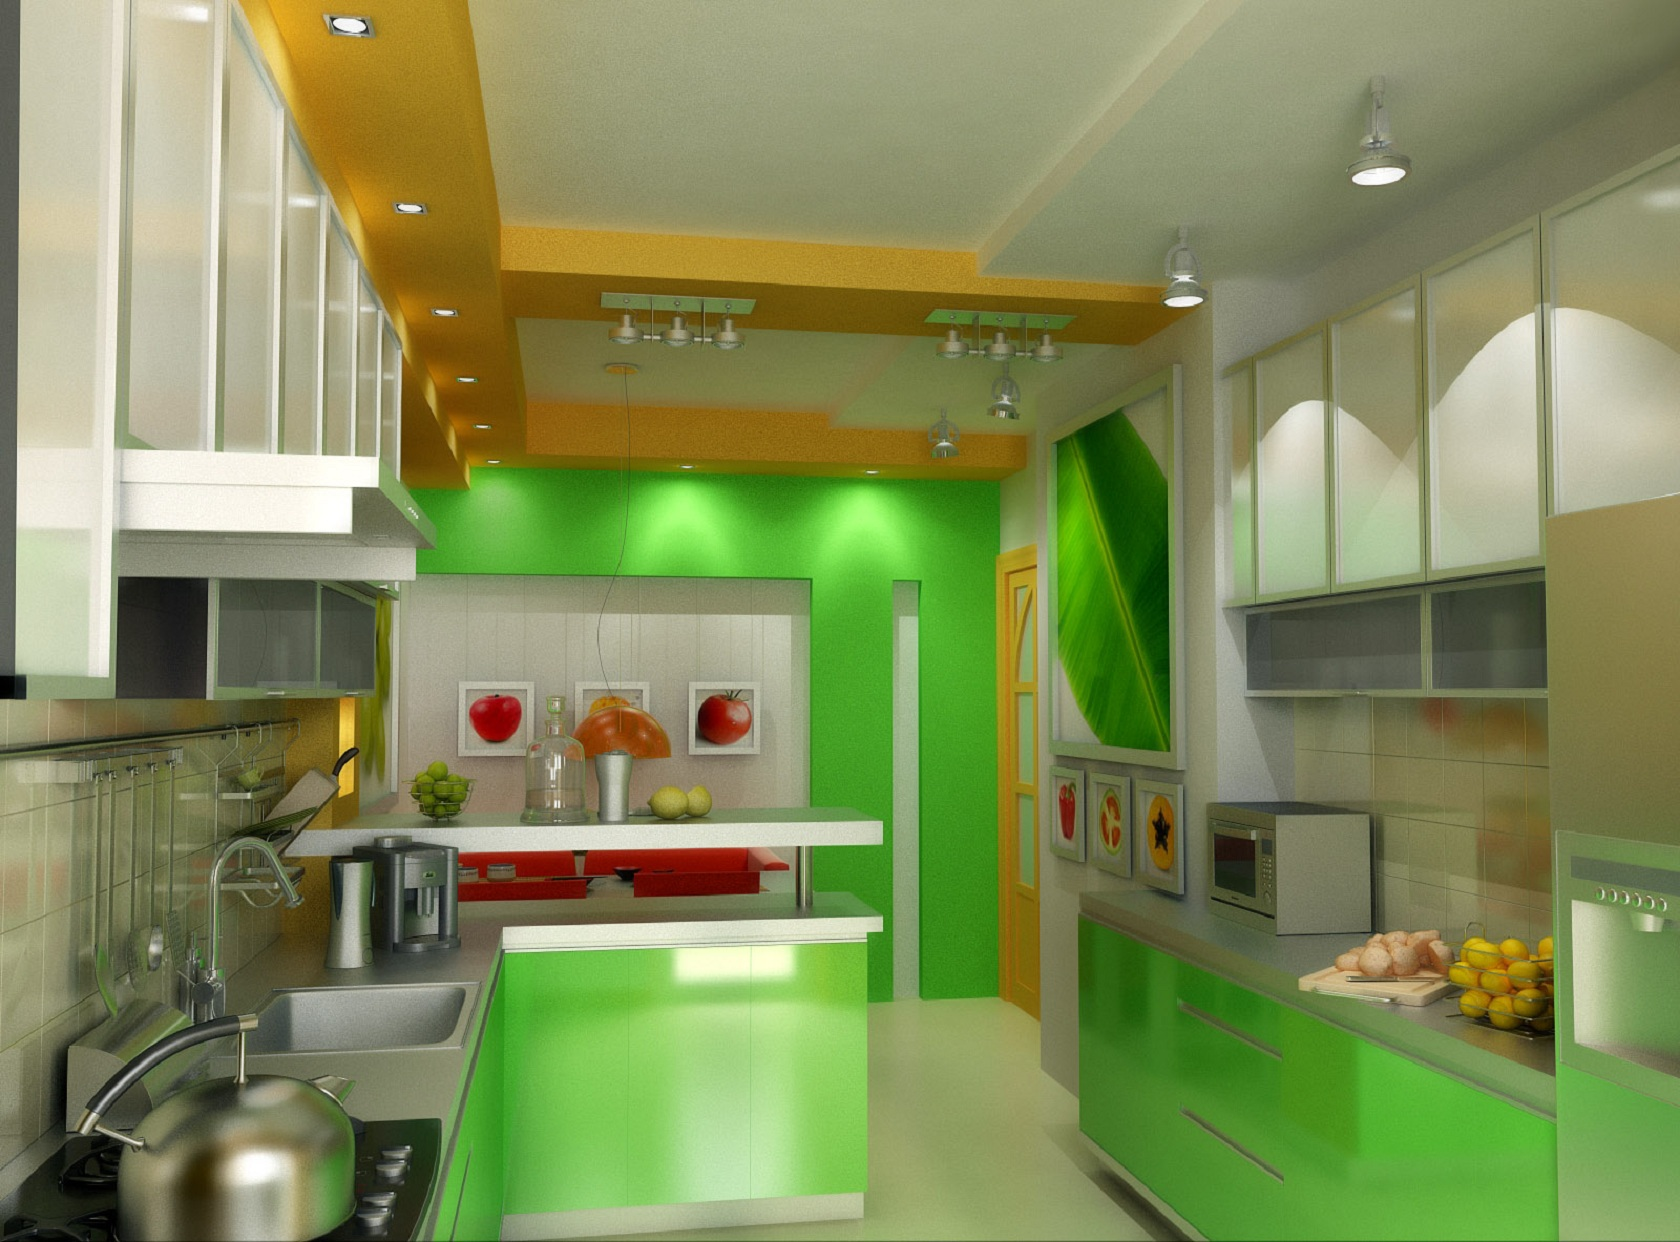 Une cuisine color block bricobistro for Green and white kitchen designs